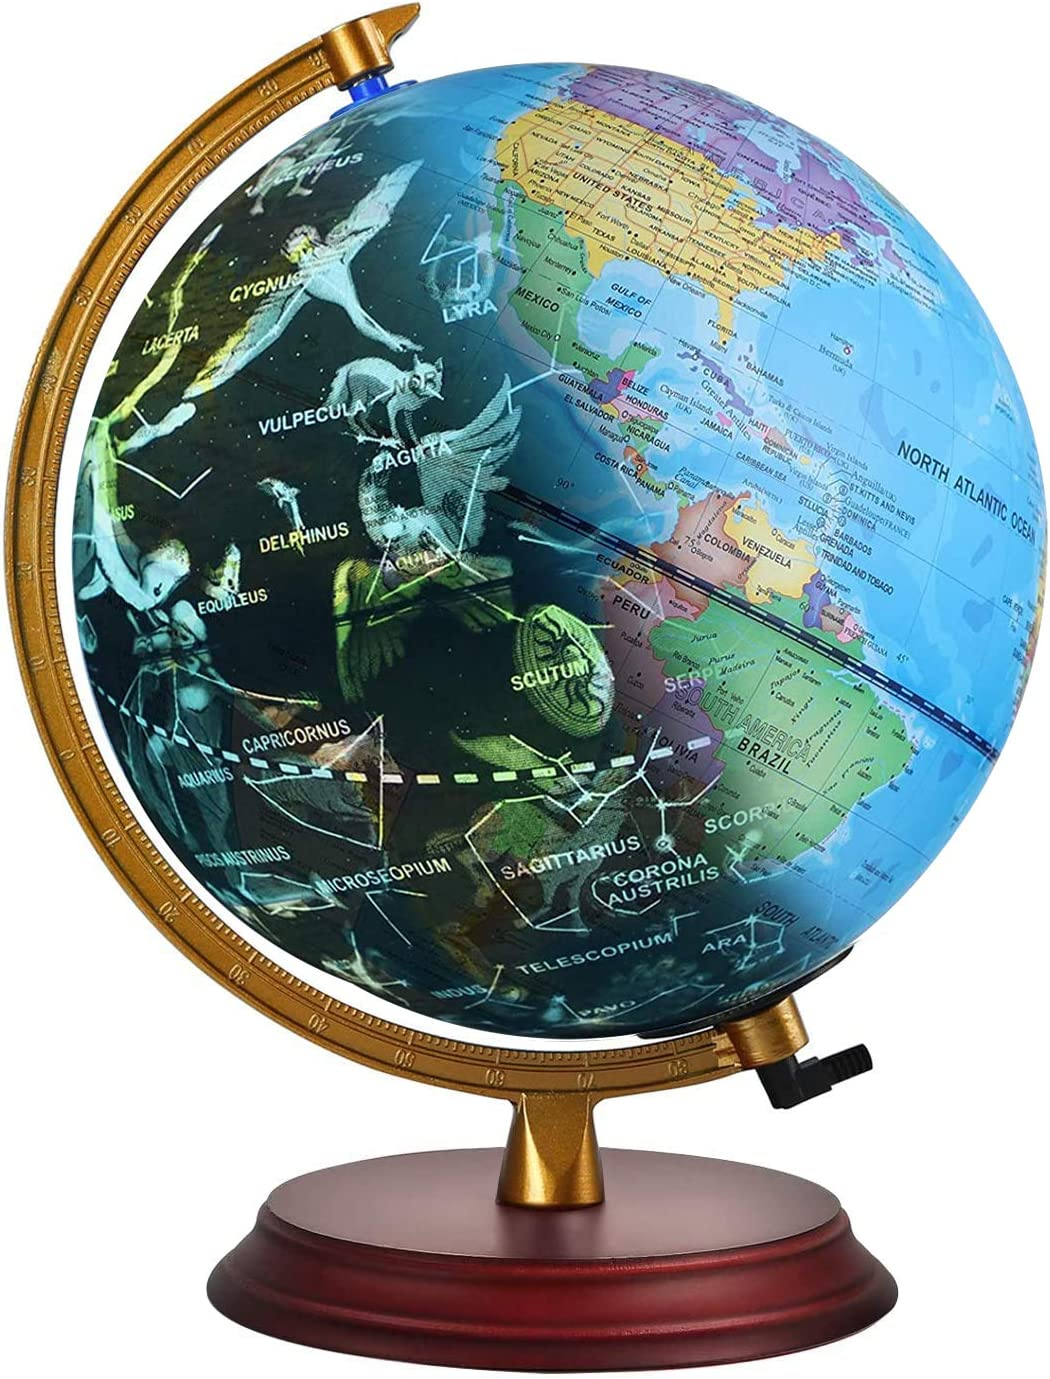 TTKTK Illuminated World Globe for Kids with Wooden Base - Night View Stars Constellation Pattern Globe with Detailed Colorful World Map,Built-in LED Bulb, Educational Gift, Night Stand Decor 8inch